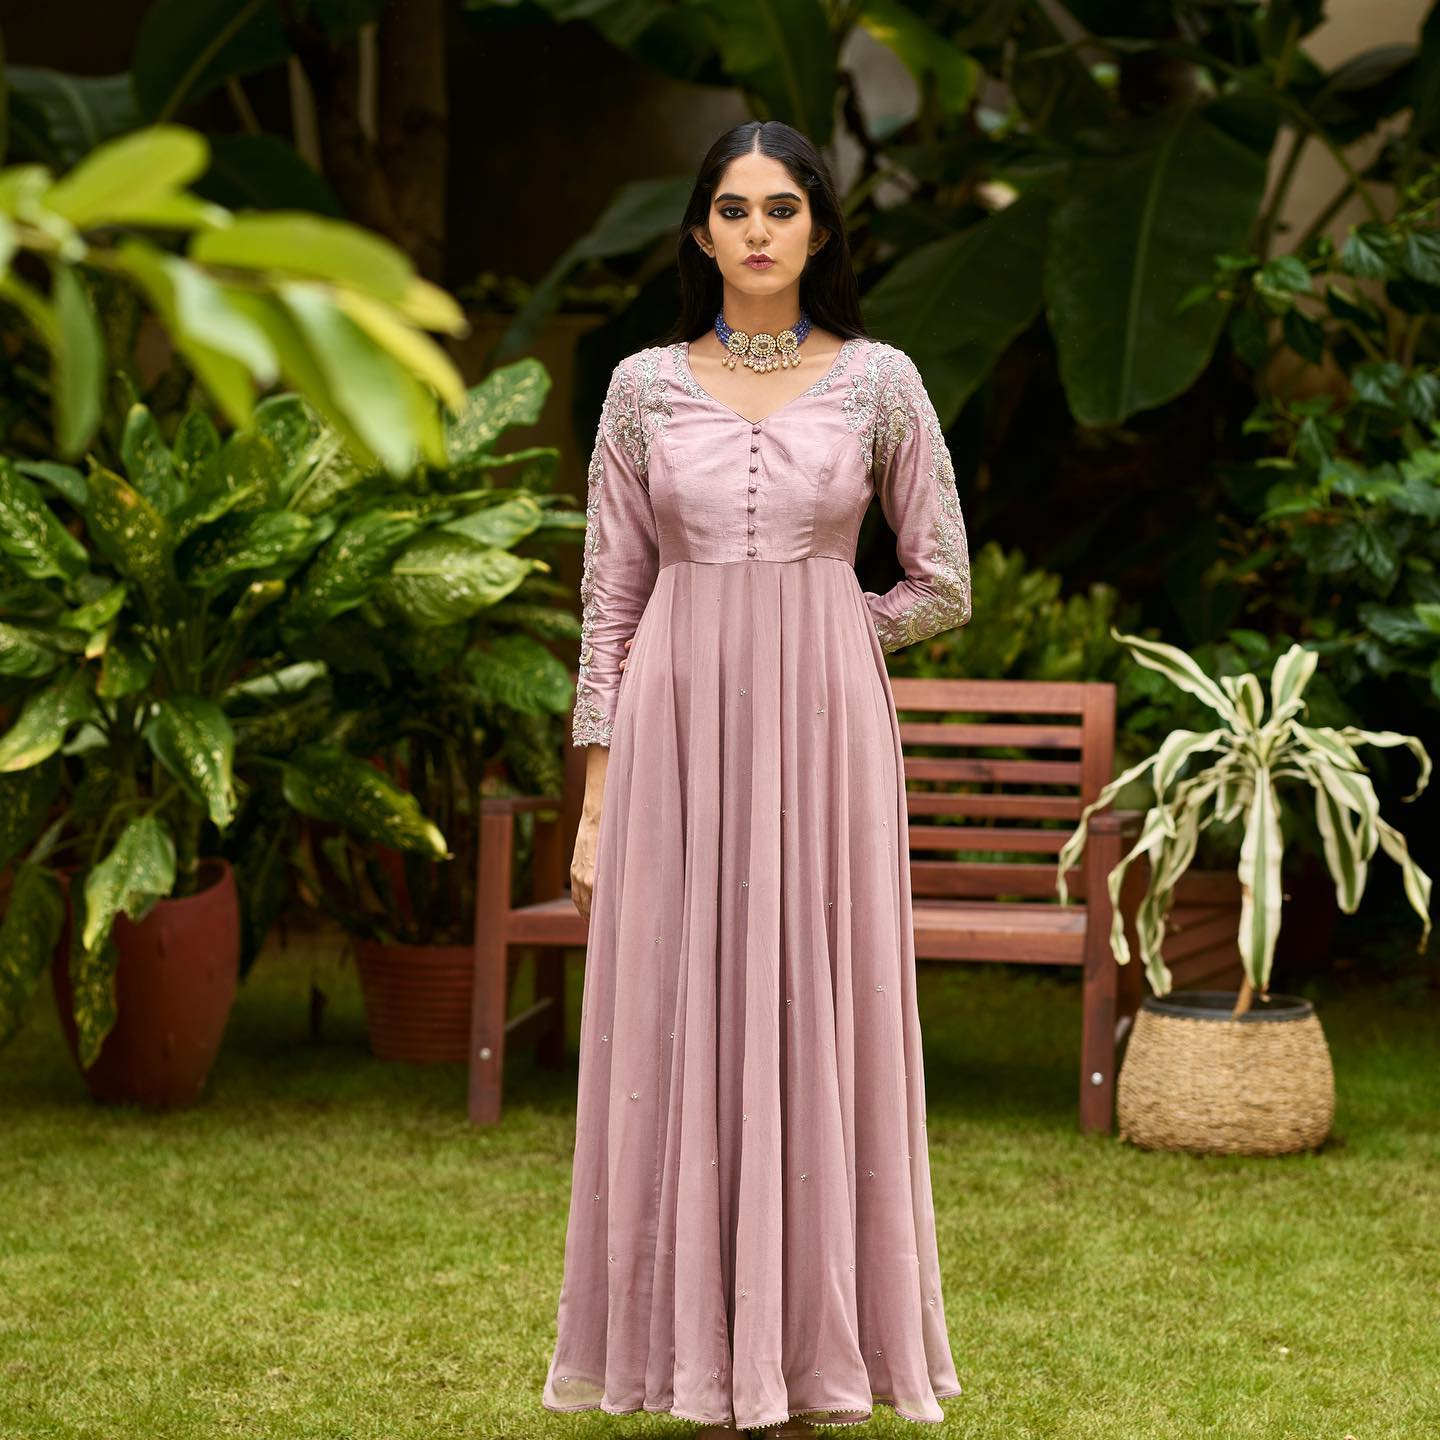 Phulwari . Kritya in Maple pink long anarkali. This garment features elegant zardozi embroidery on sleeves and shoulder with small detailing all over. The silhouette is classic and unique at the same time.  To shop our new collection Phulwari DM or Whatsapp on +91 99083 48333. 2021-10-14